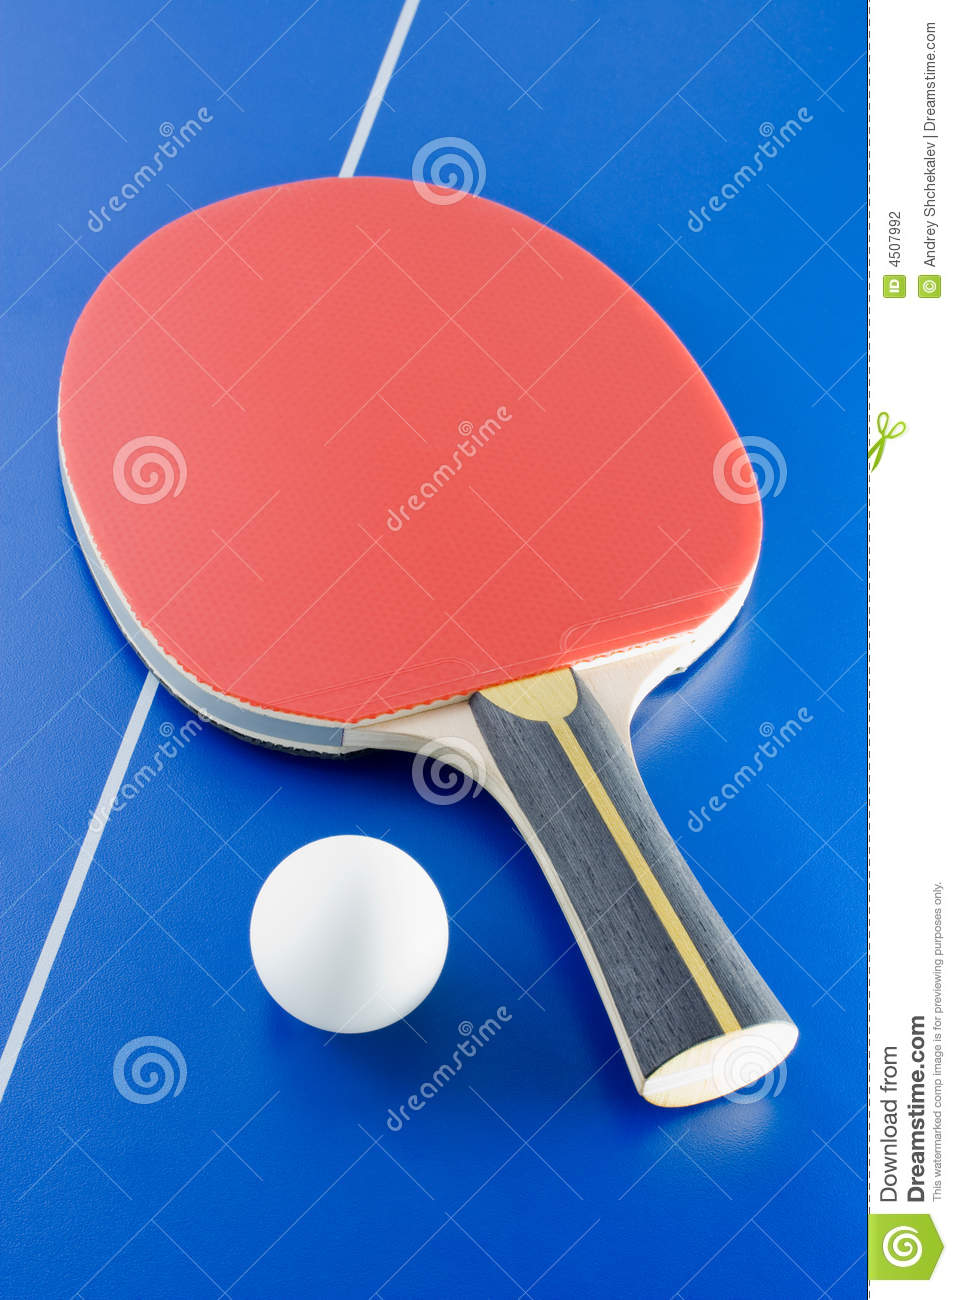 Table tennis equipment stock photography image 4507992 - Equipment for table tennis ...